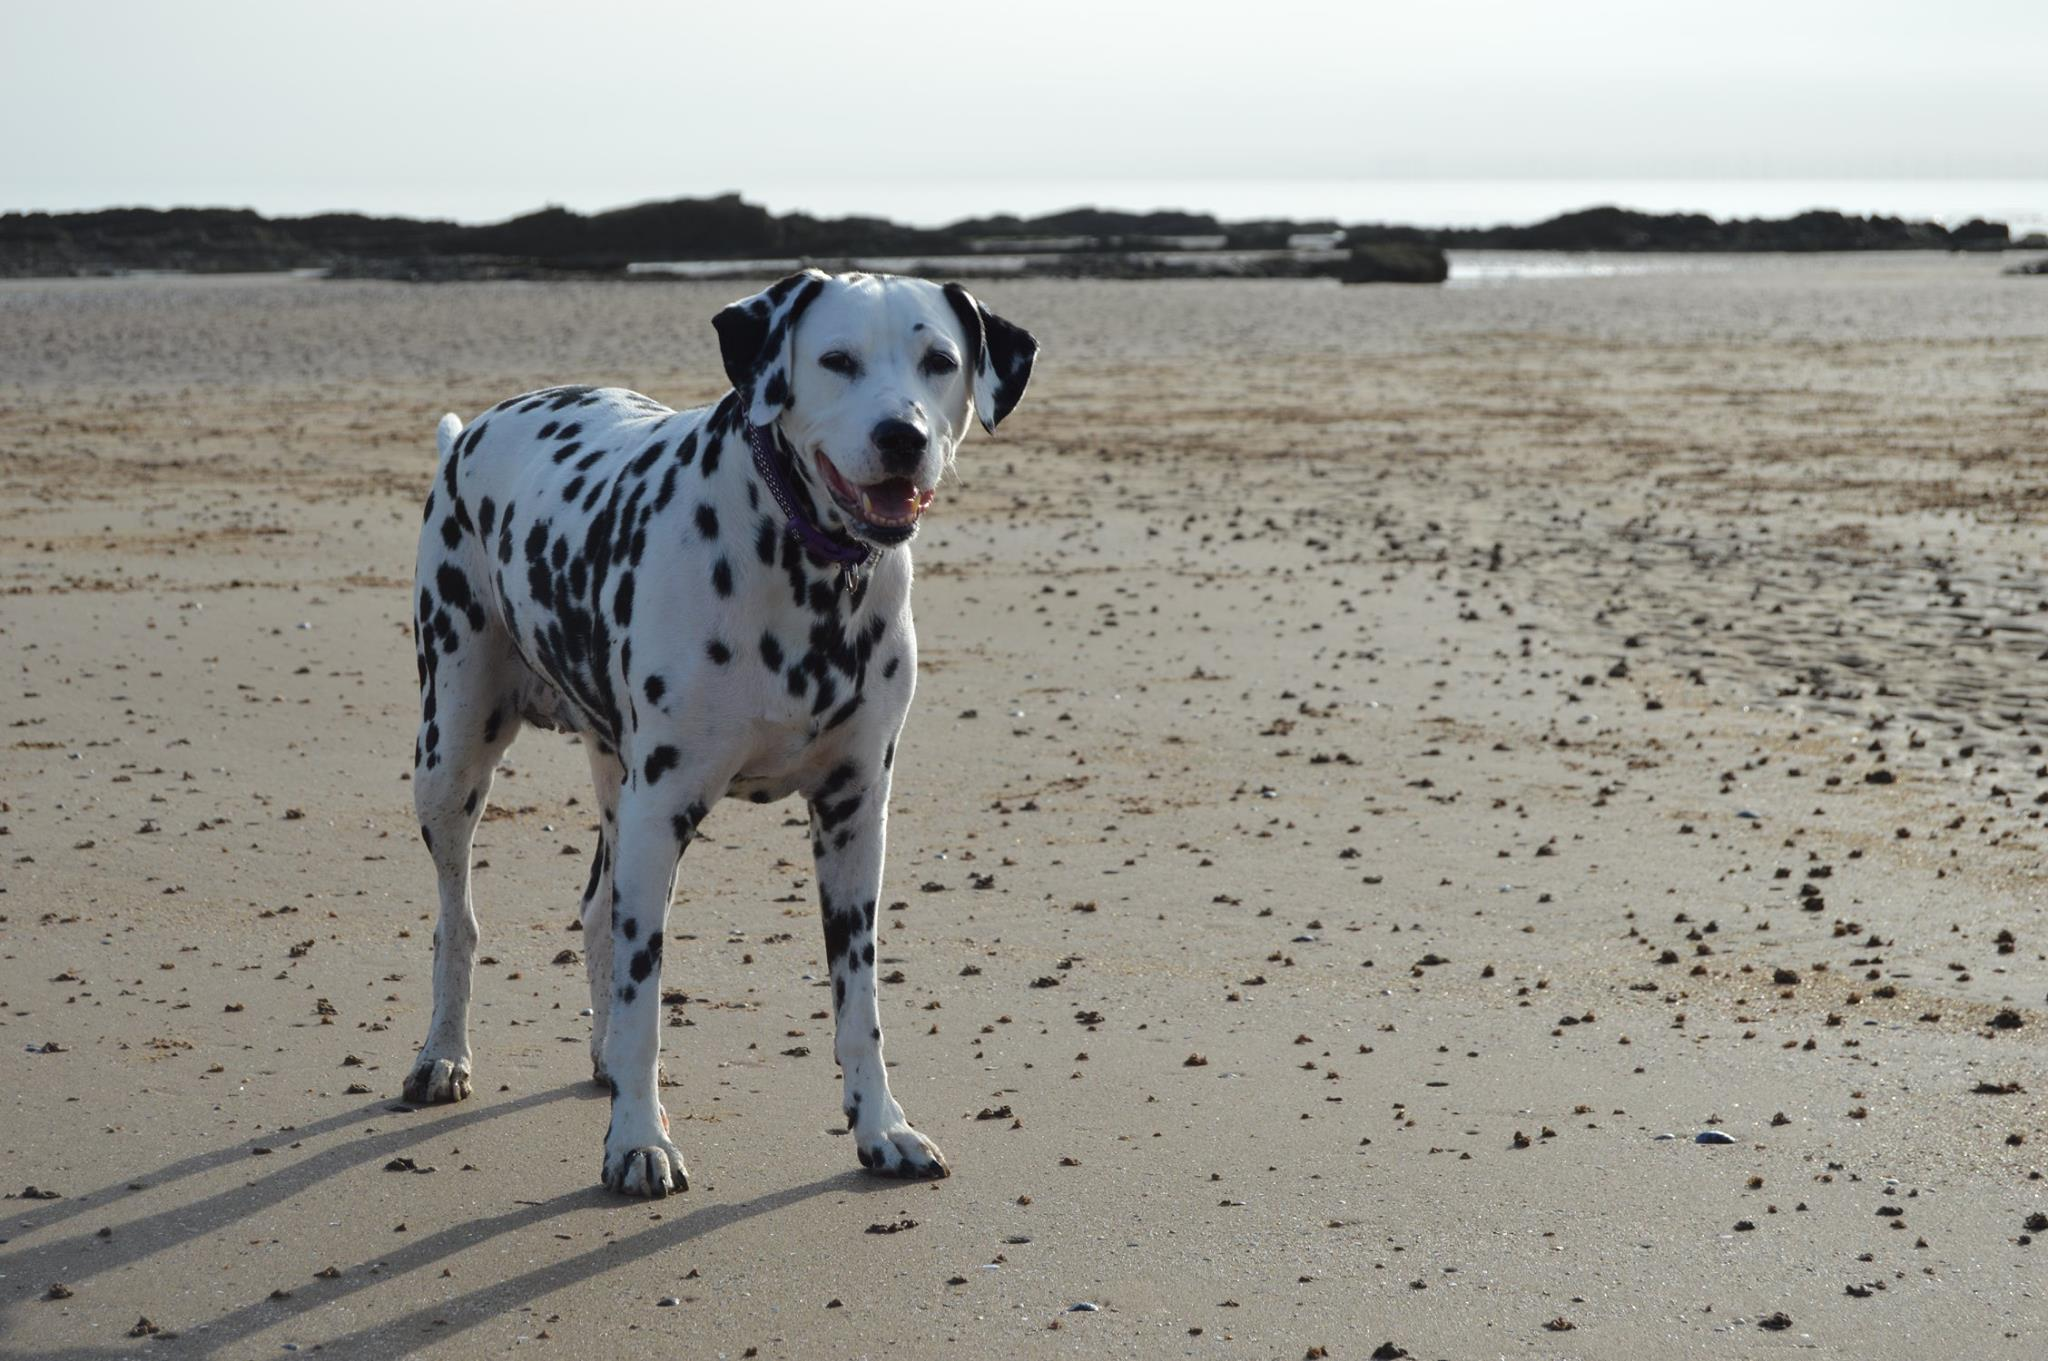 My Dalmatian Molly enjoying one of her many beach walks.